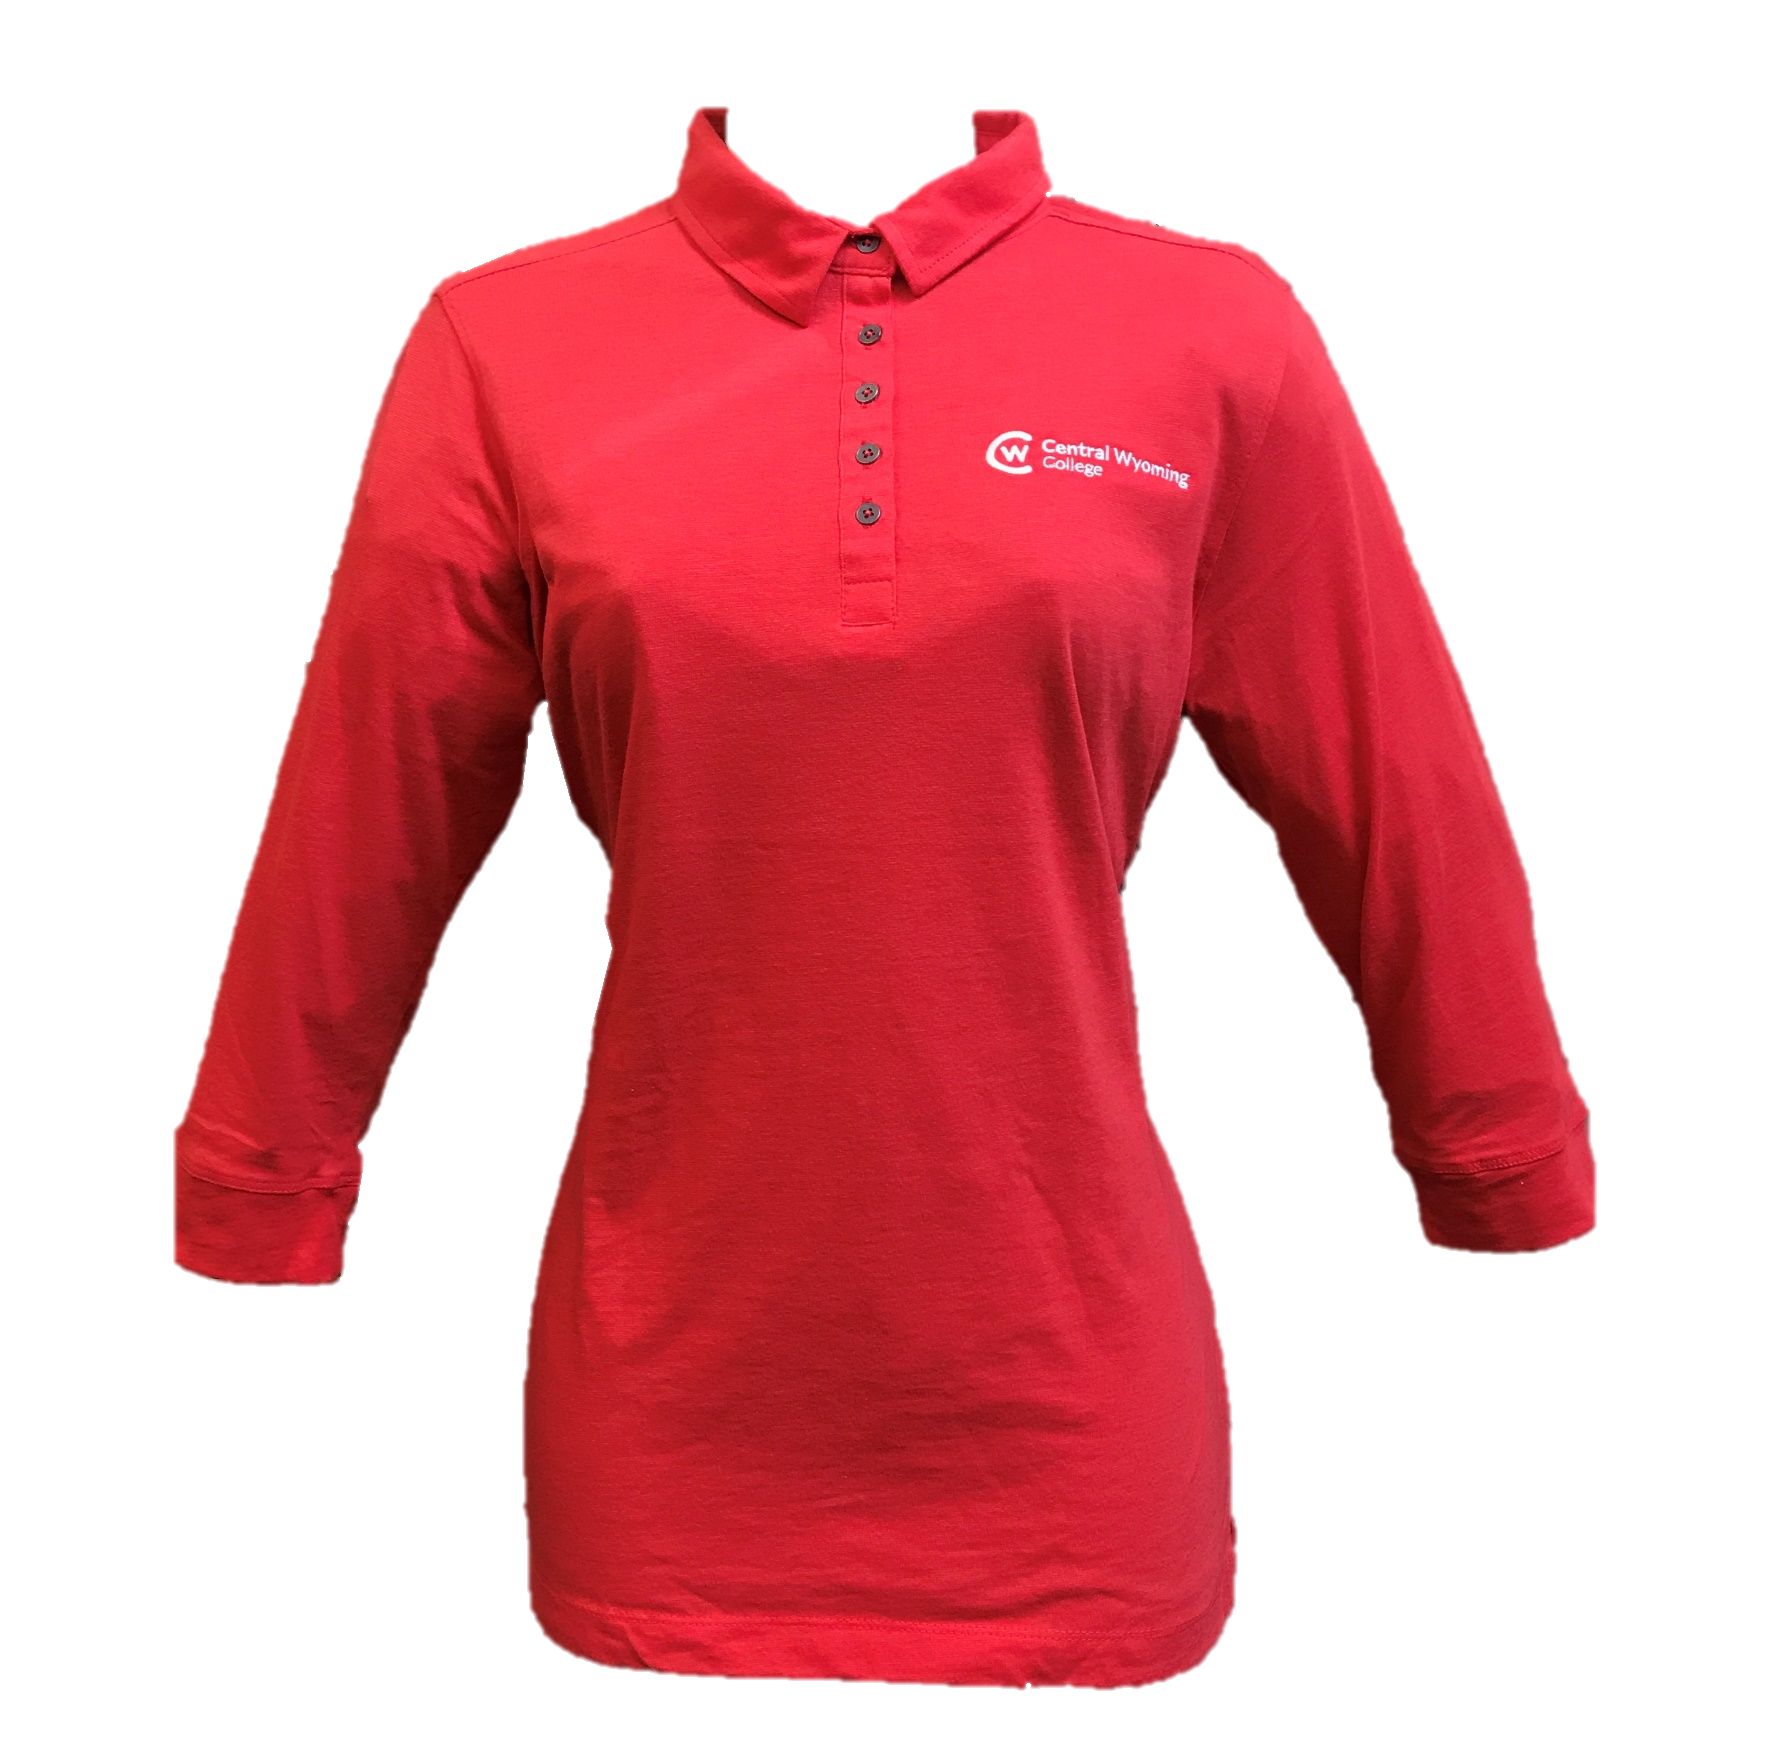 Women's 3/4 Sleeve Cotton Polo